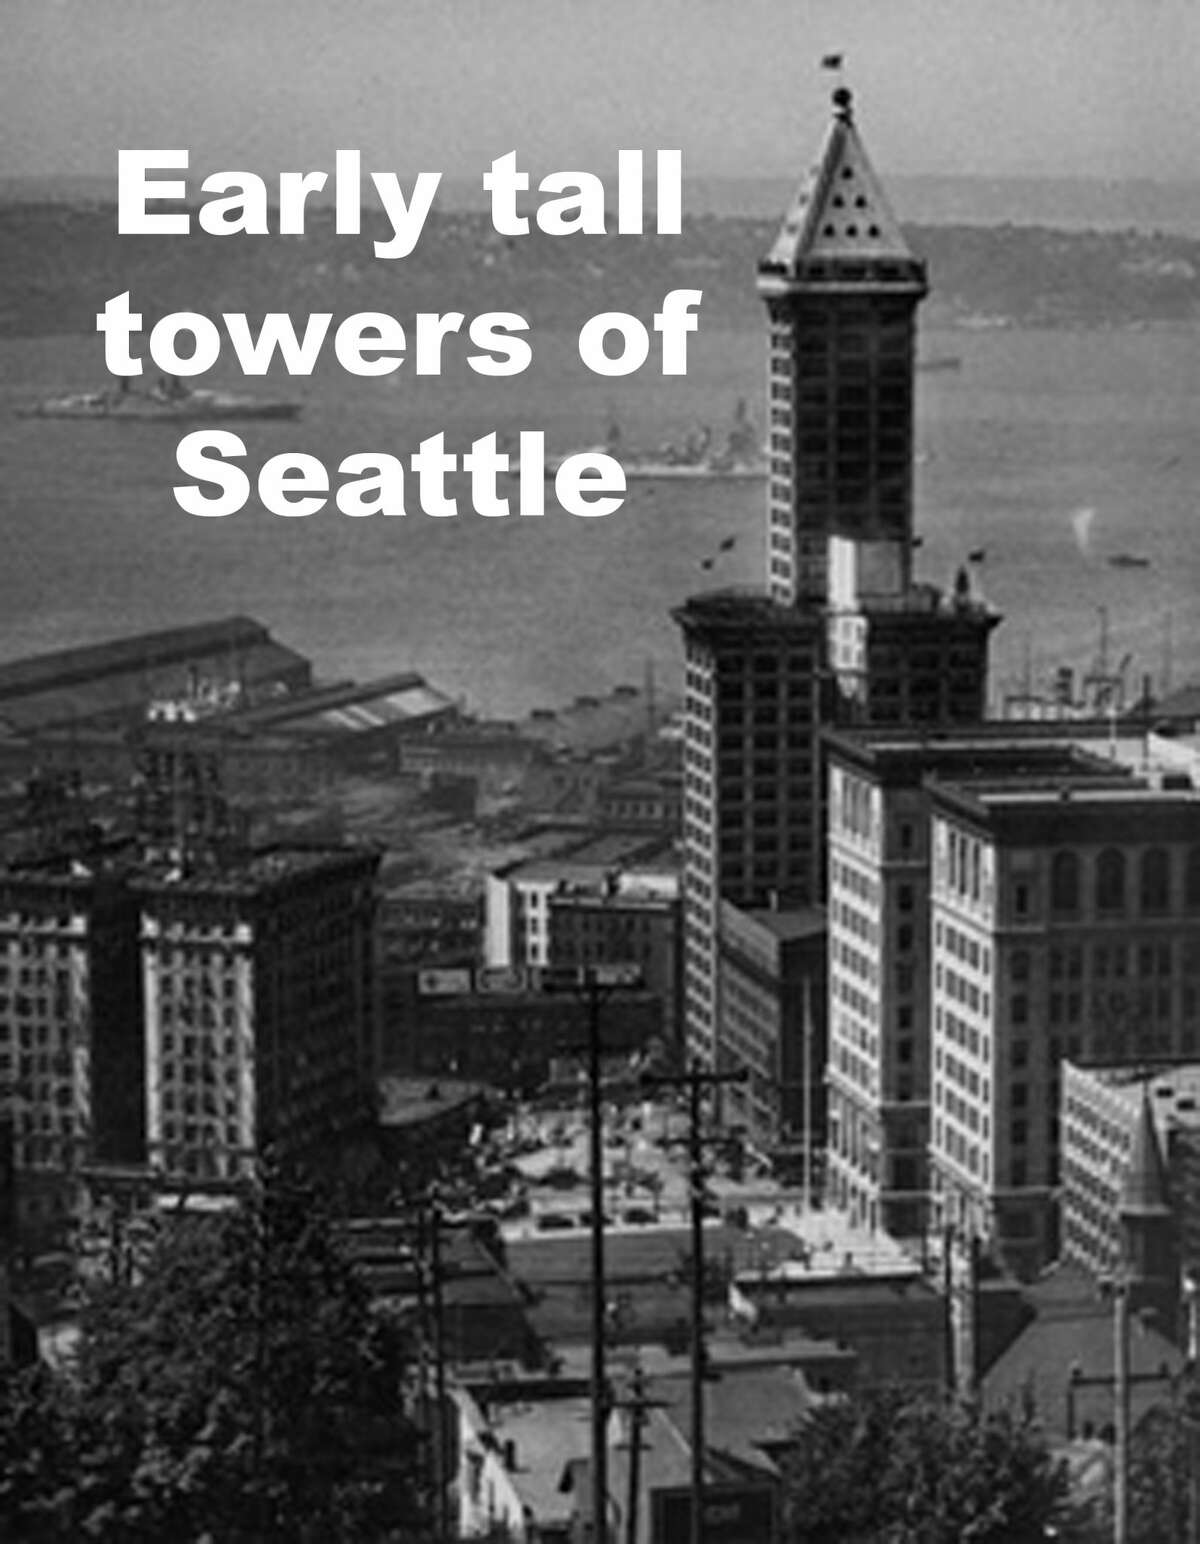 Click through to see some of the tallest skyscrapers of Seattle.